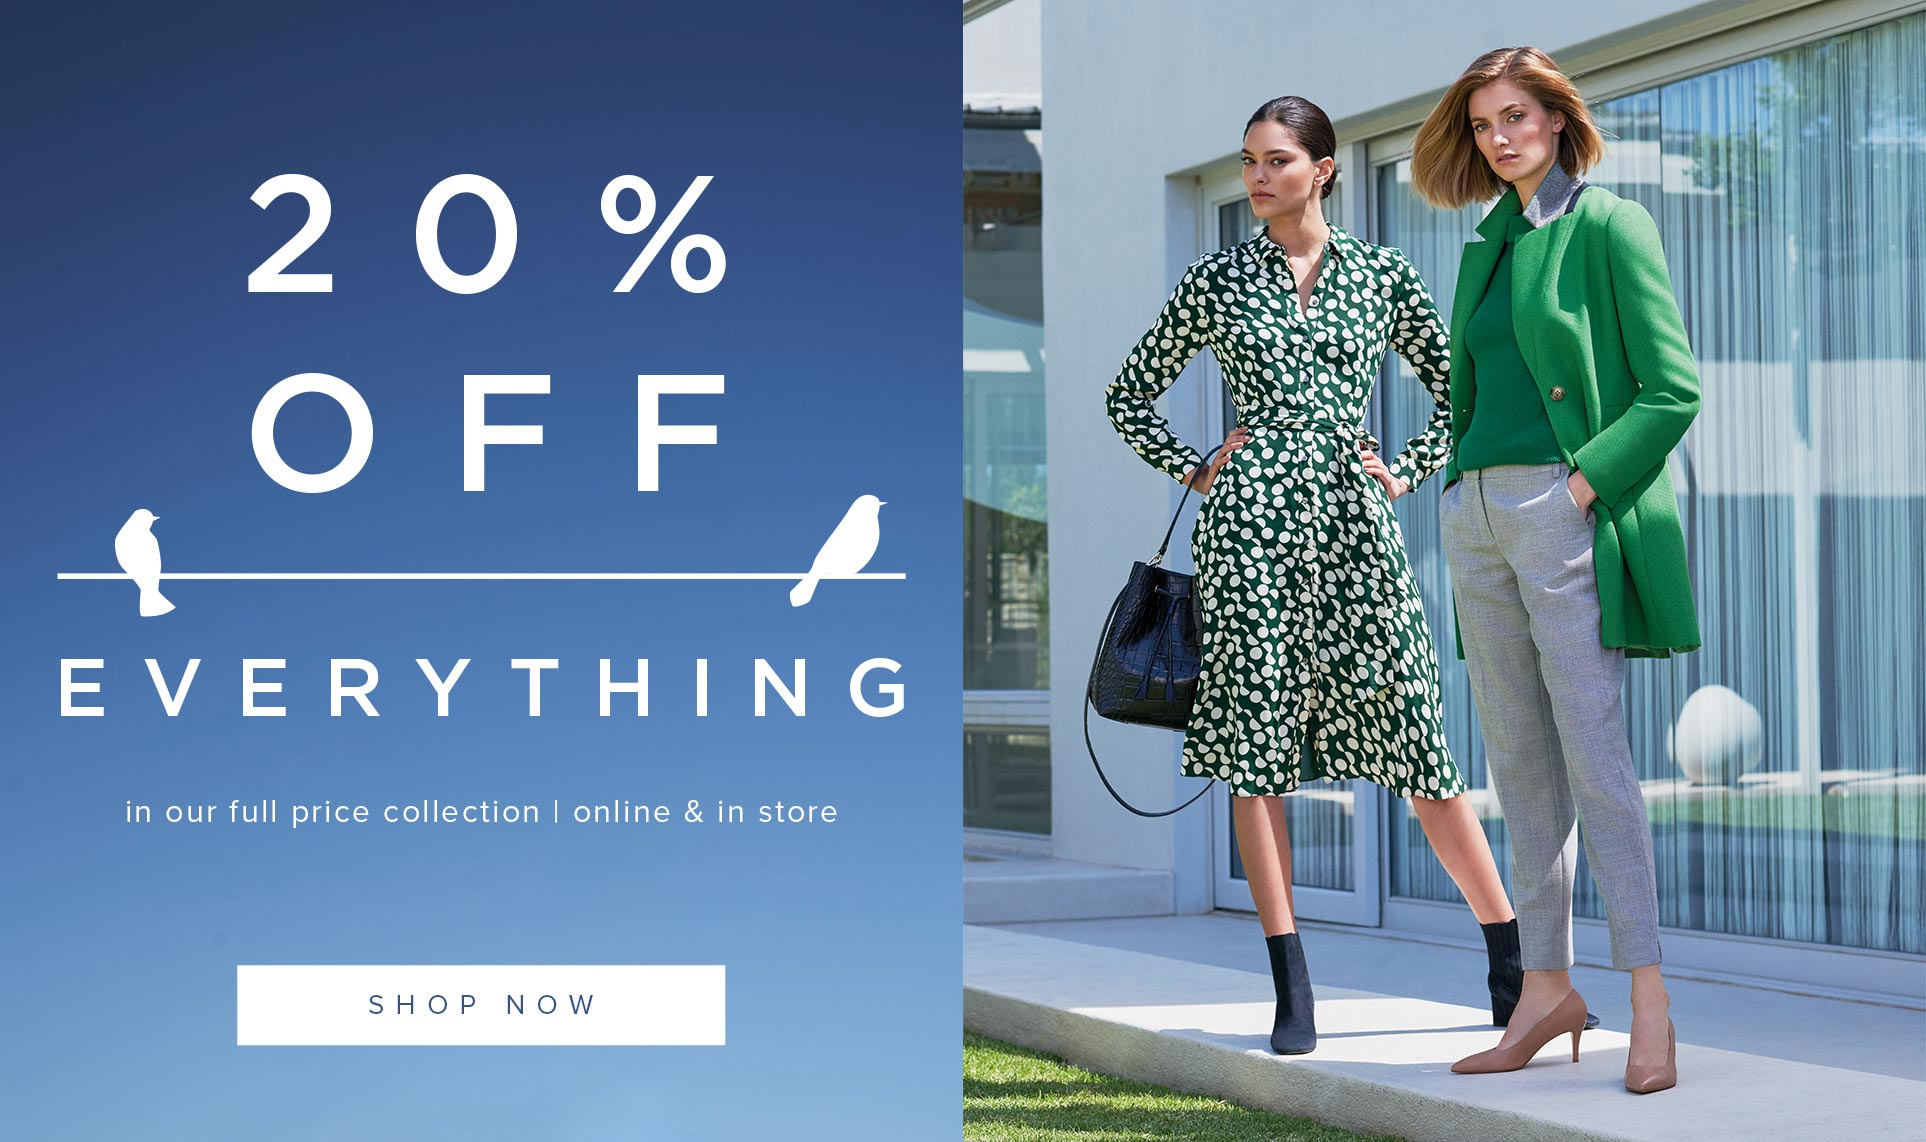 Hobbs Printed Green Dress and Workwear Green Coat and Grey Trousers